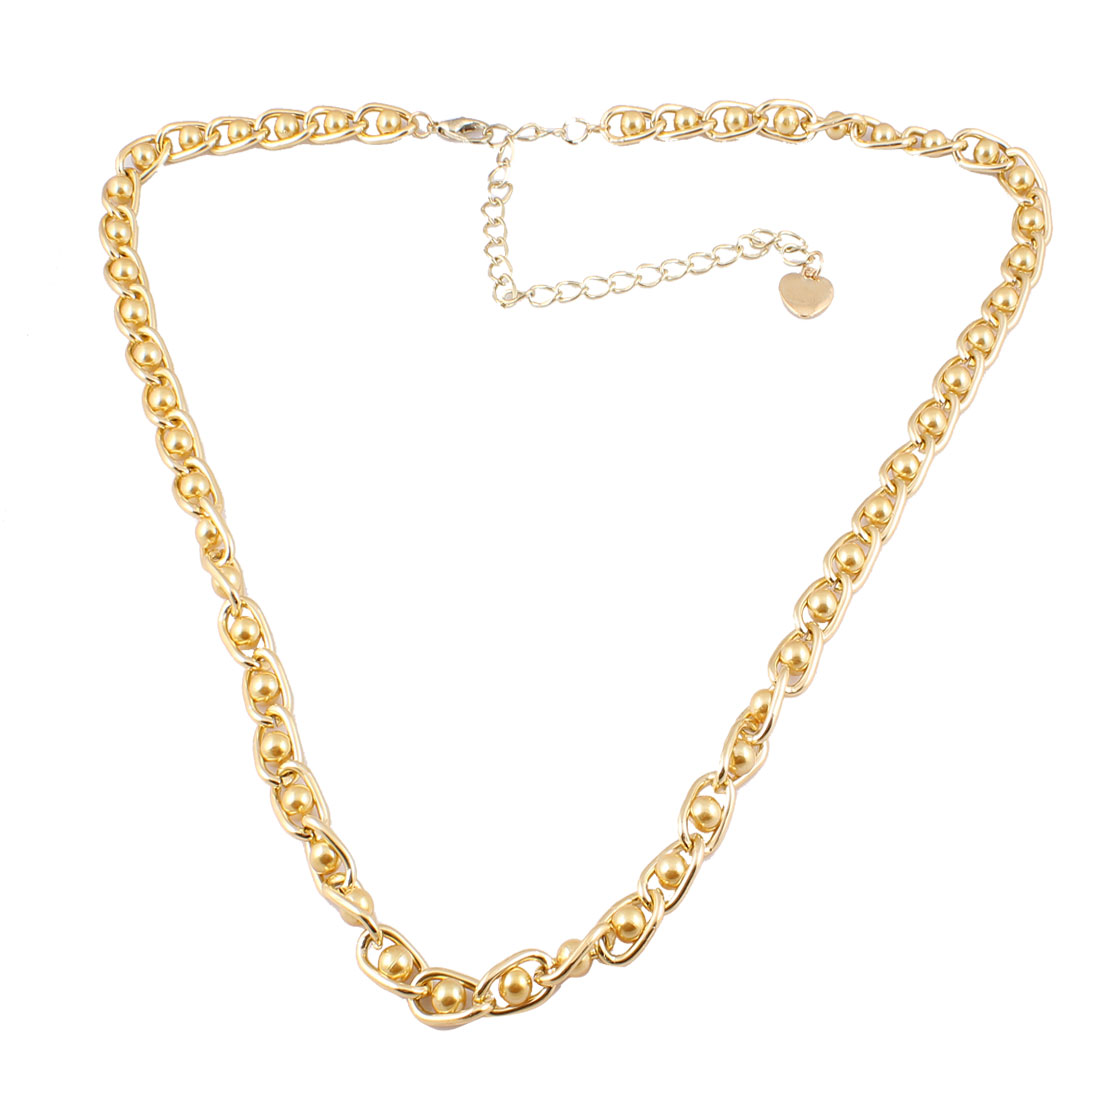 Metallic Gold Tone Faux Pearl Detail Heart Pendent Curbchain Waist Chain for Lady